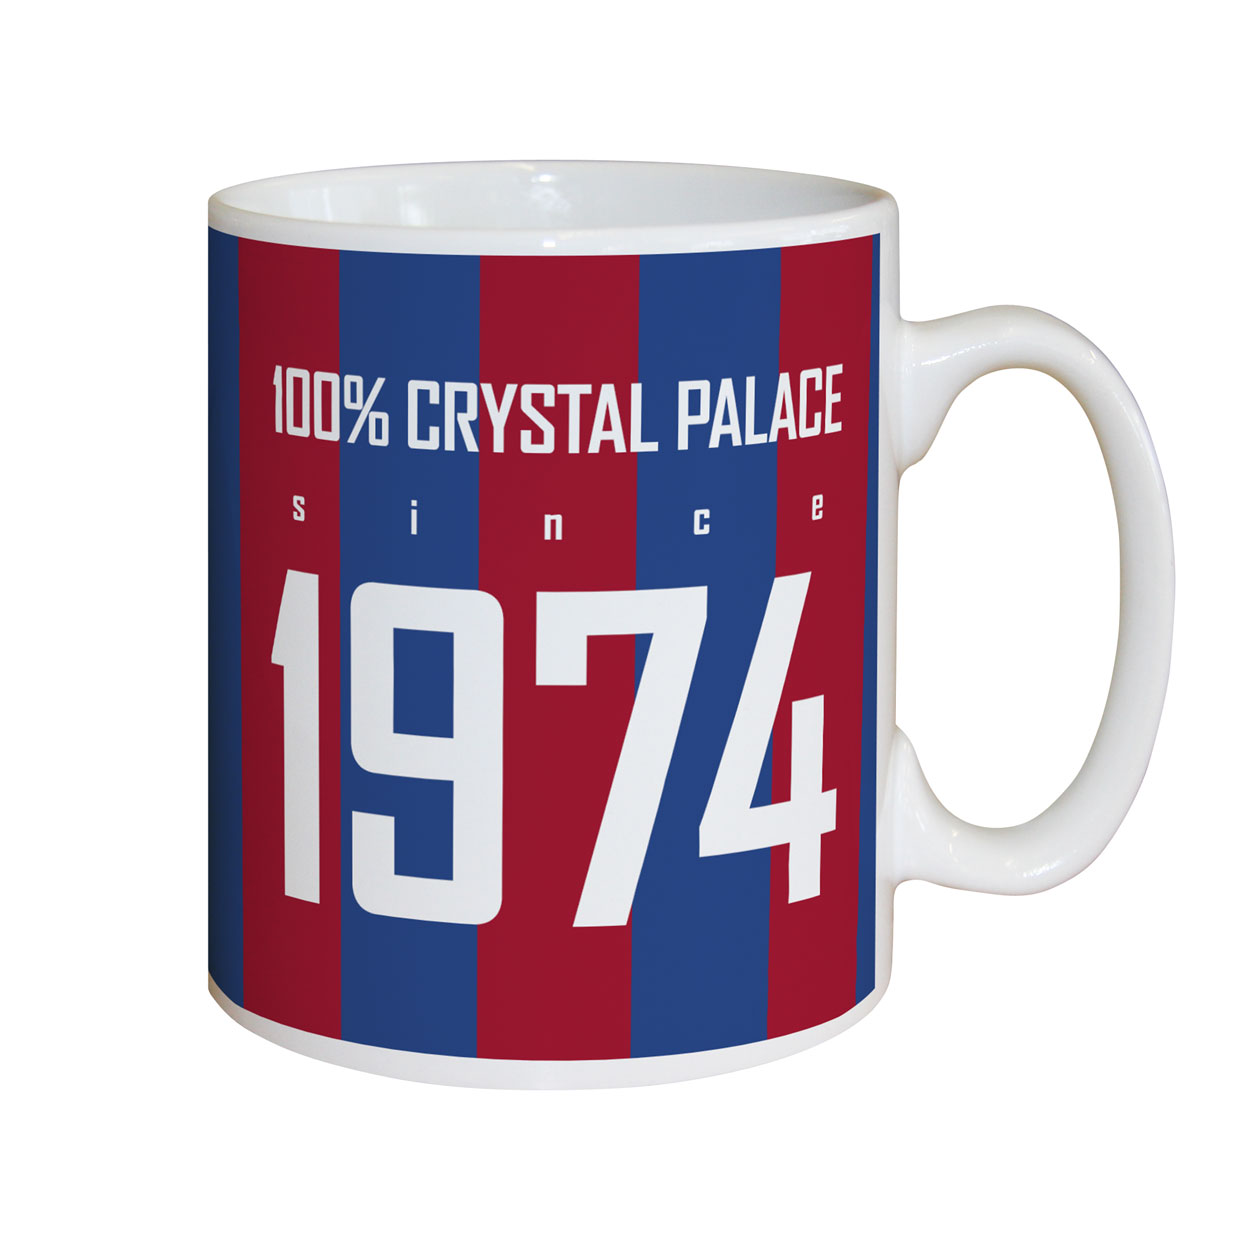 Crystal Palace FC 100 Percent Mug